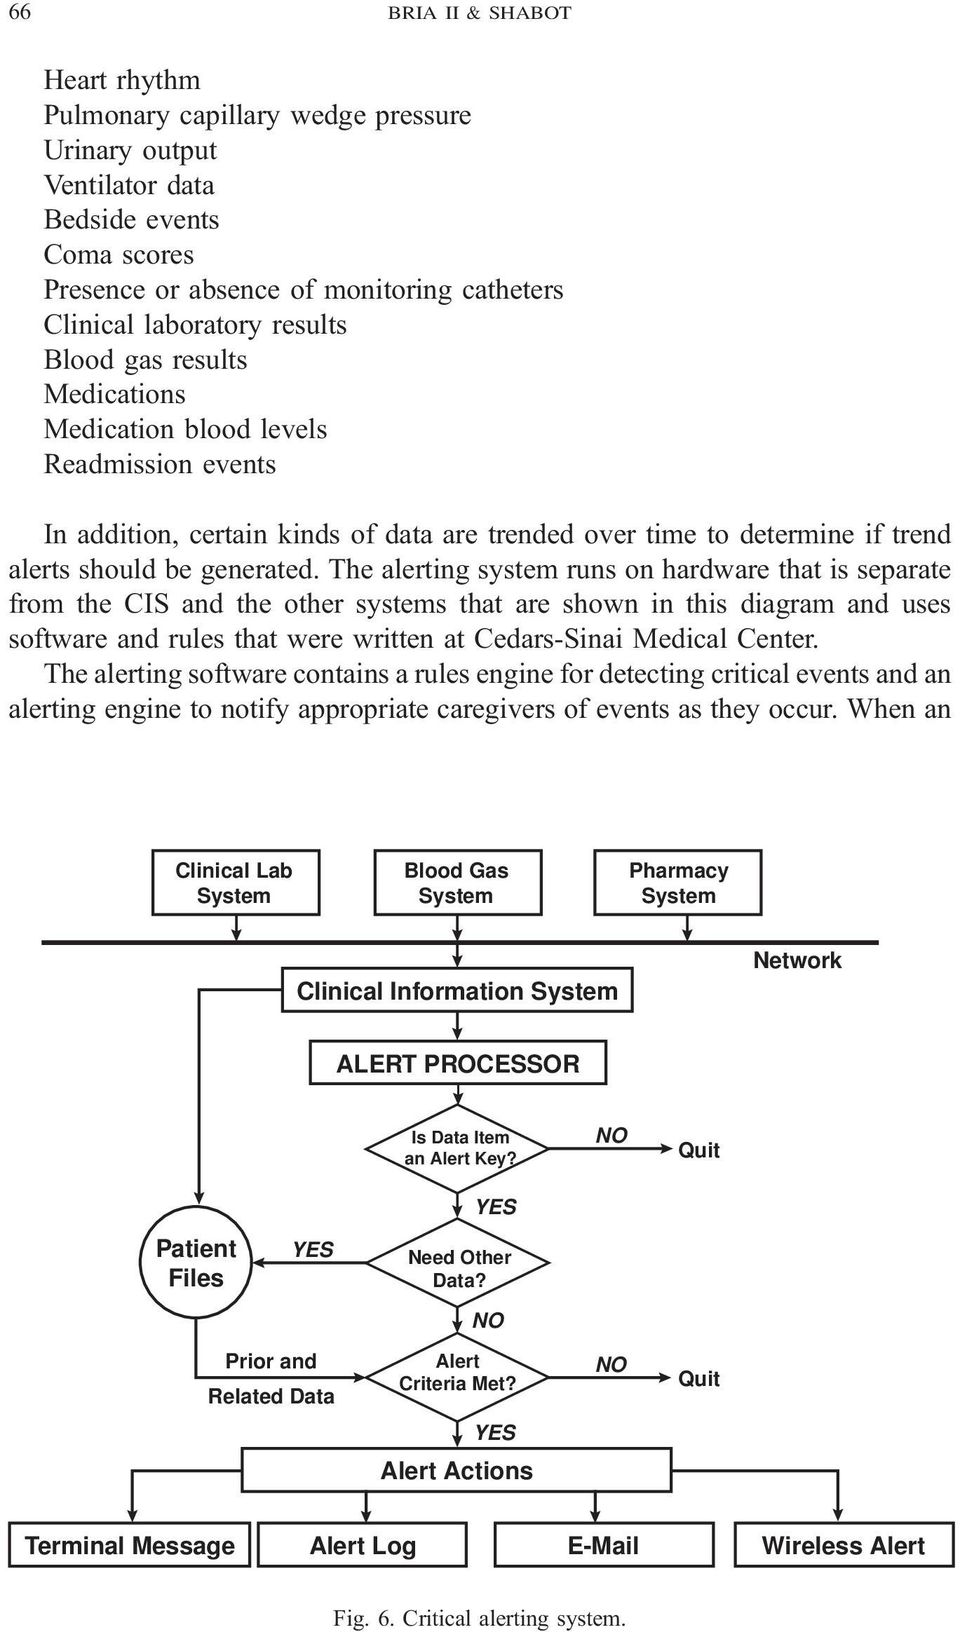 The alerting system runs on hardware that is separate from the CIS and the other systems that are shown in this diagram and uses software and rules that were written at Cedars-Sinai Medical Center.